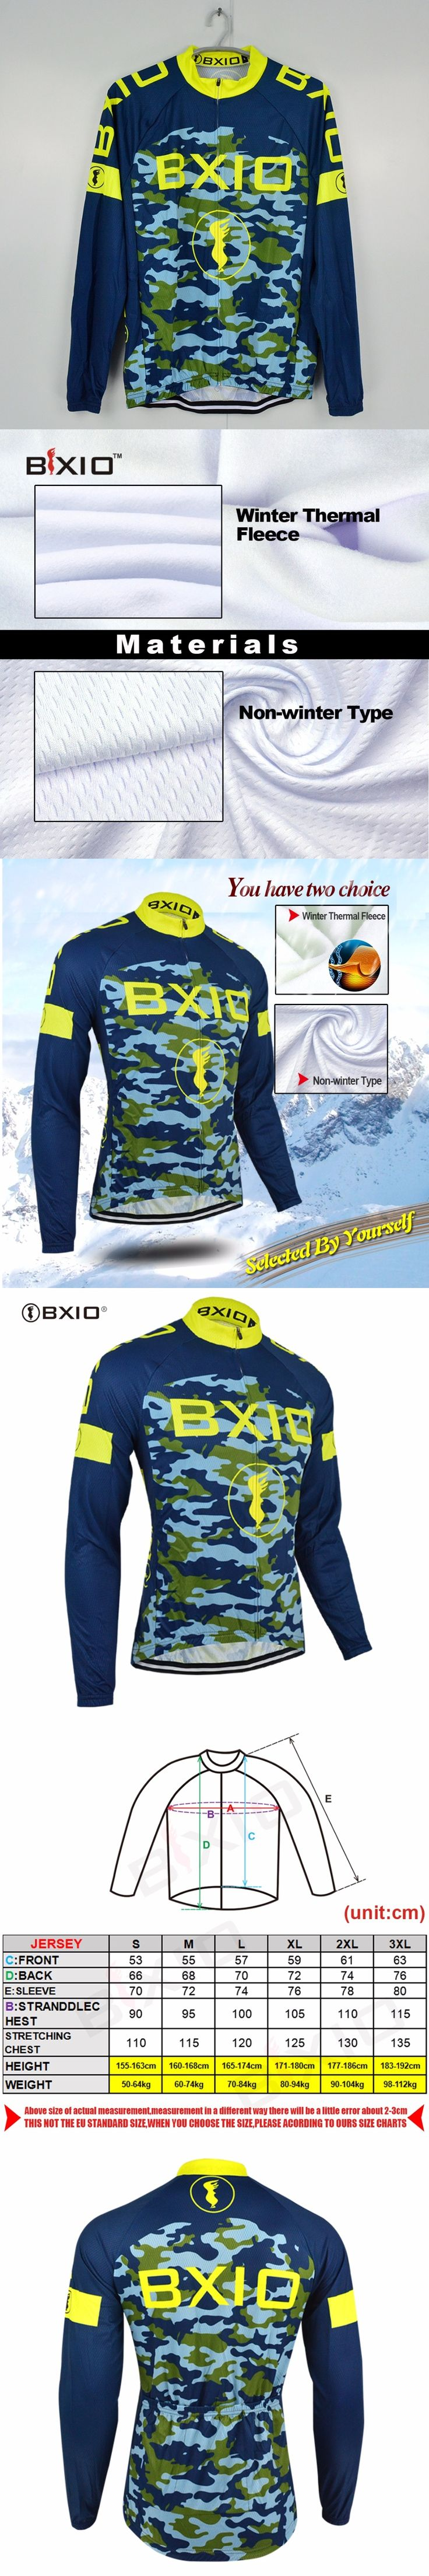 BXIO Pro Team Cycling Jersey Ropa Ciclismo Winter Long Sleeve Cycling Clothing Camouflage Equipe De France Maillot Ciclismo 052J